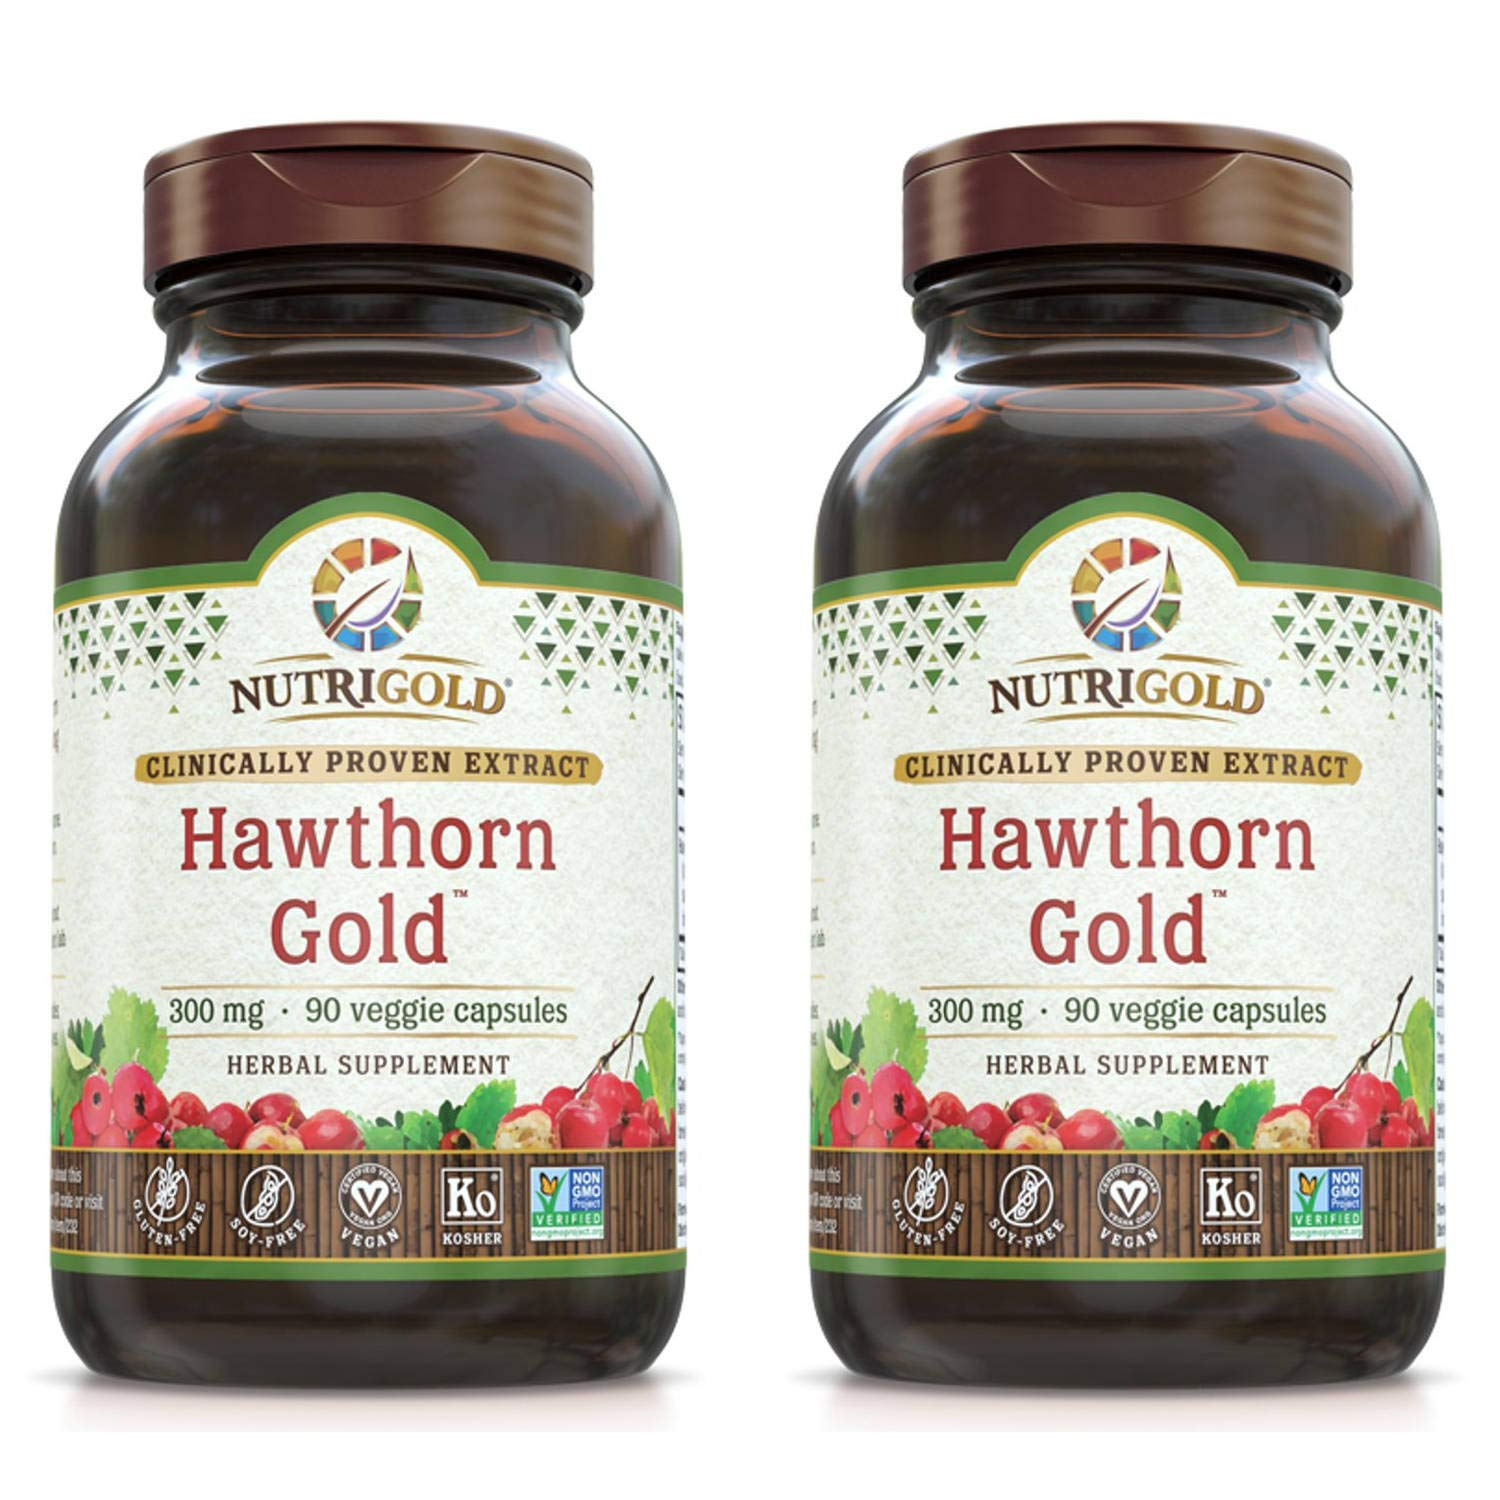 Nutrigold Hawthorn Gold Clinically Proven Extract for Cardiac Muscle Tone, Blood Vessel Integrity and Healthy Circulation (90 Veggies Capsules) Pack of 2